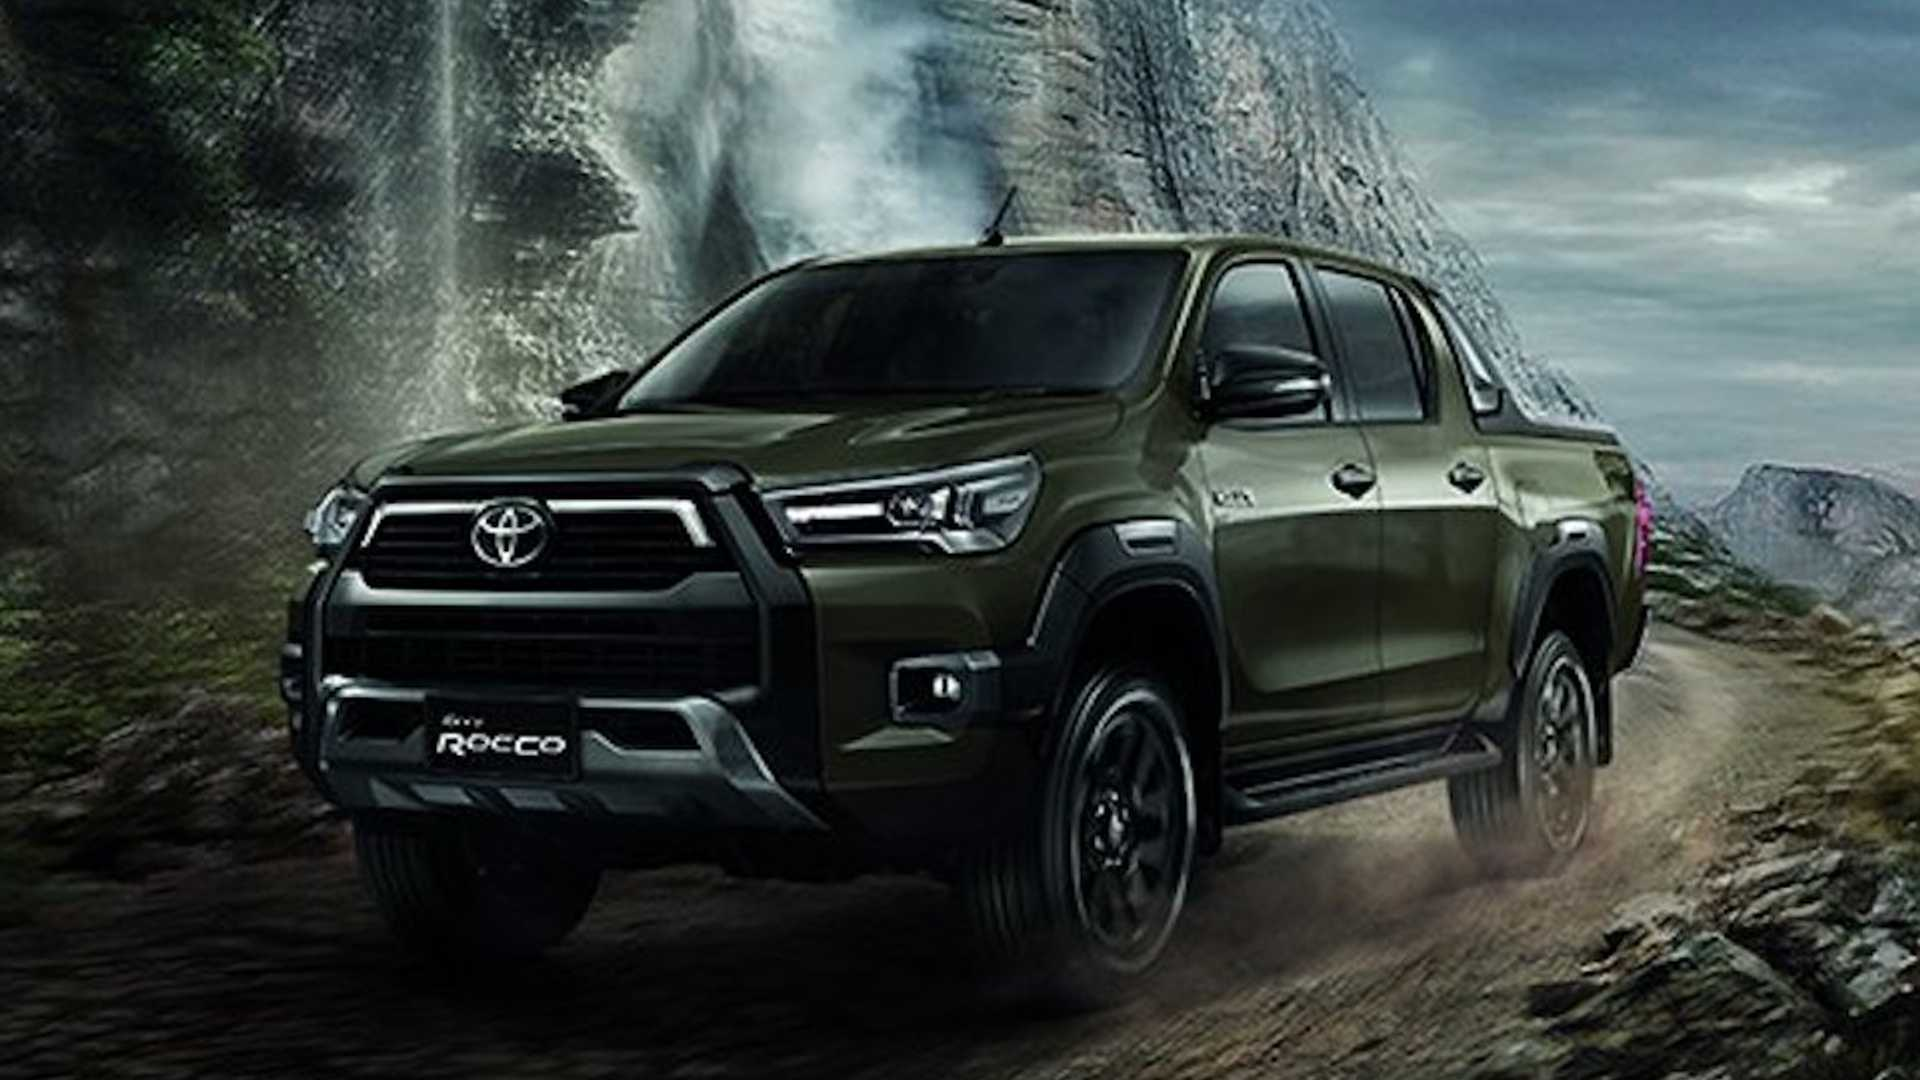 2021 toyota hilux debuts with more torque, enhanced